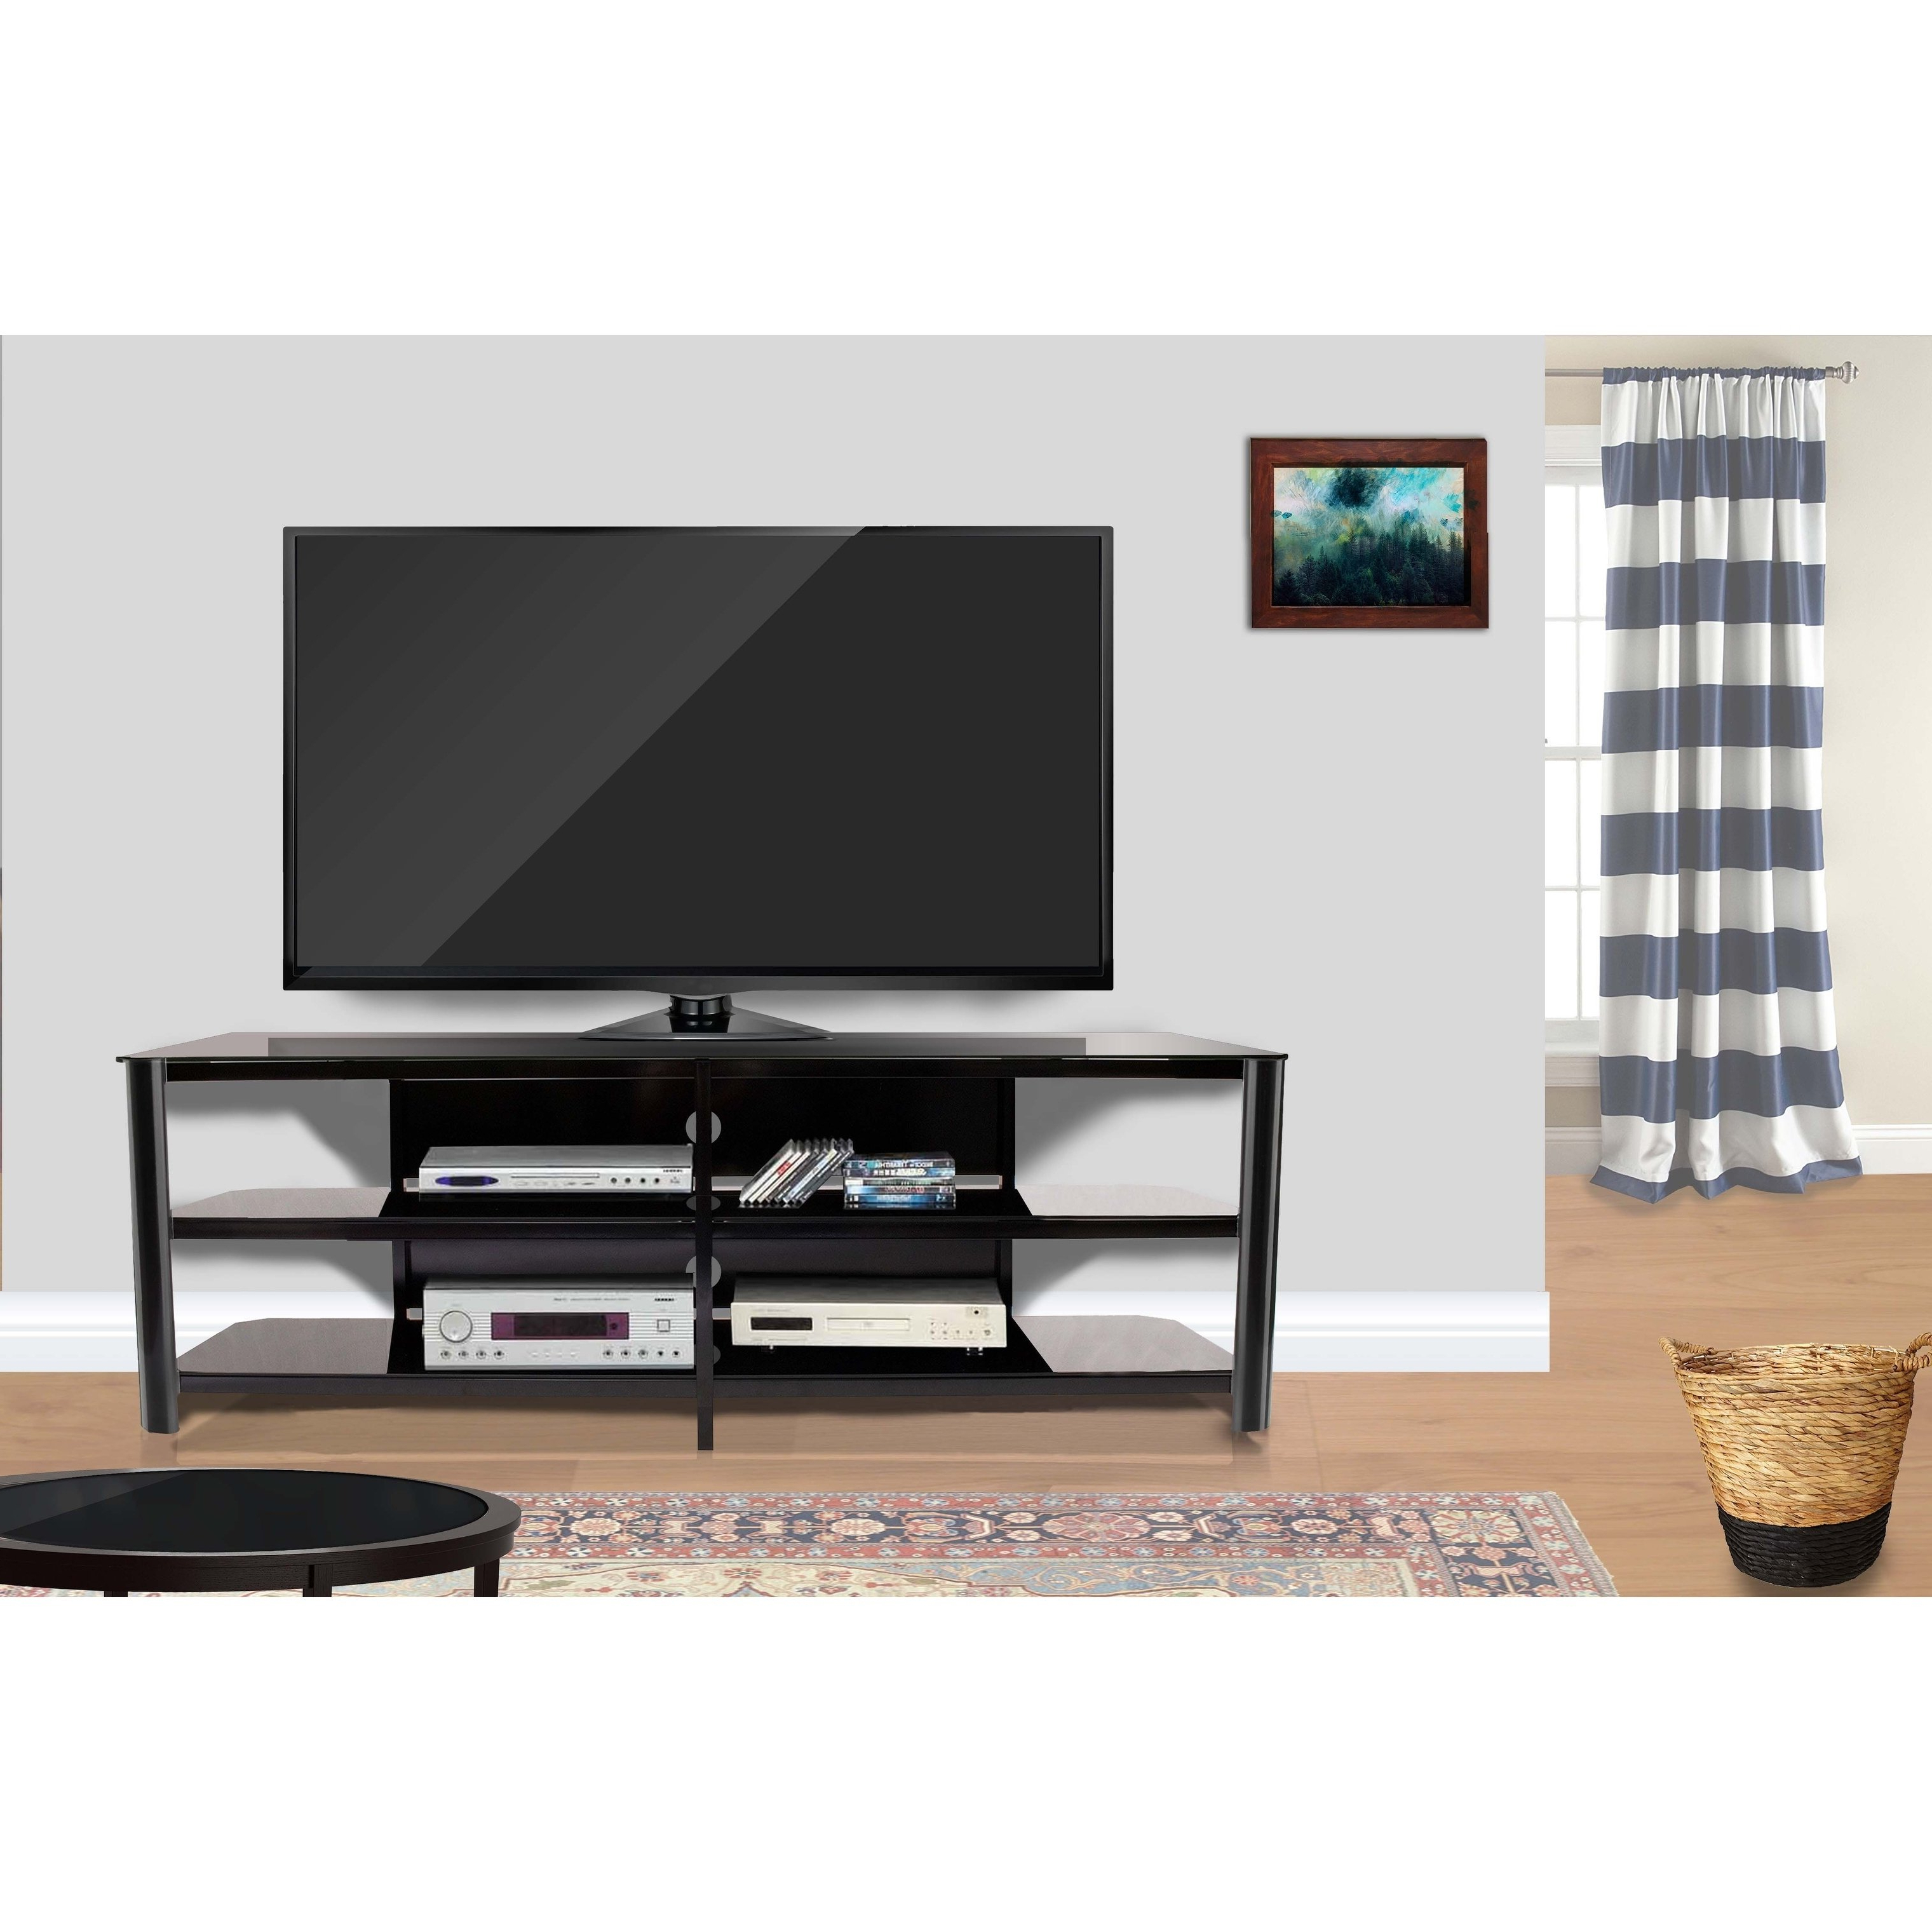 Shop Fold 'n' Snap Oxford Ez Black Innovex Tv Stand – Free Shipping Within Oxford 84 Inch Tv Stands (View 17 of 20)